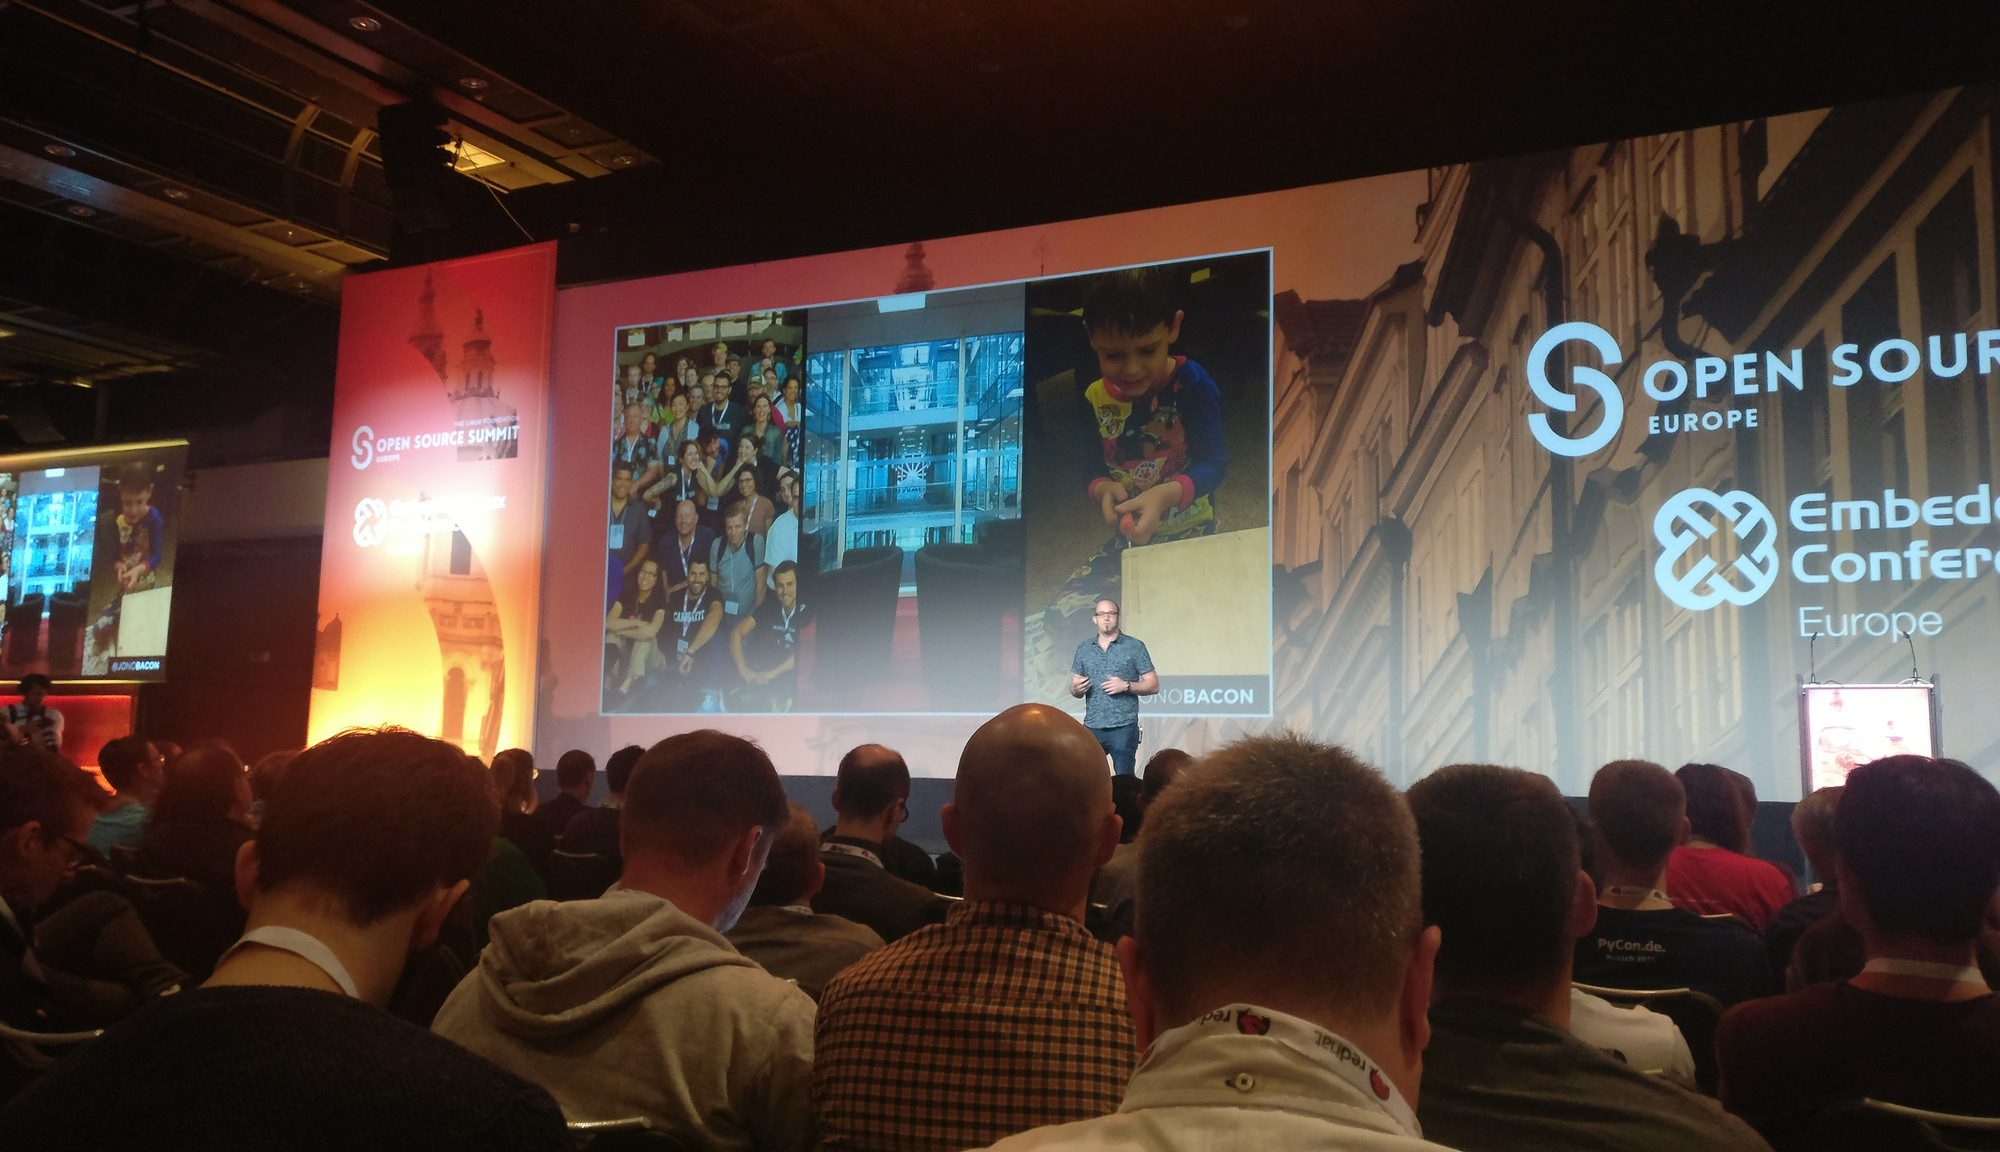 Jono Bacon at Open Source Summit showing a photo of me!